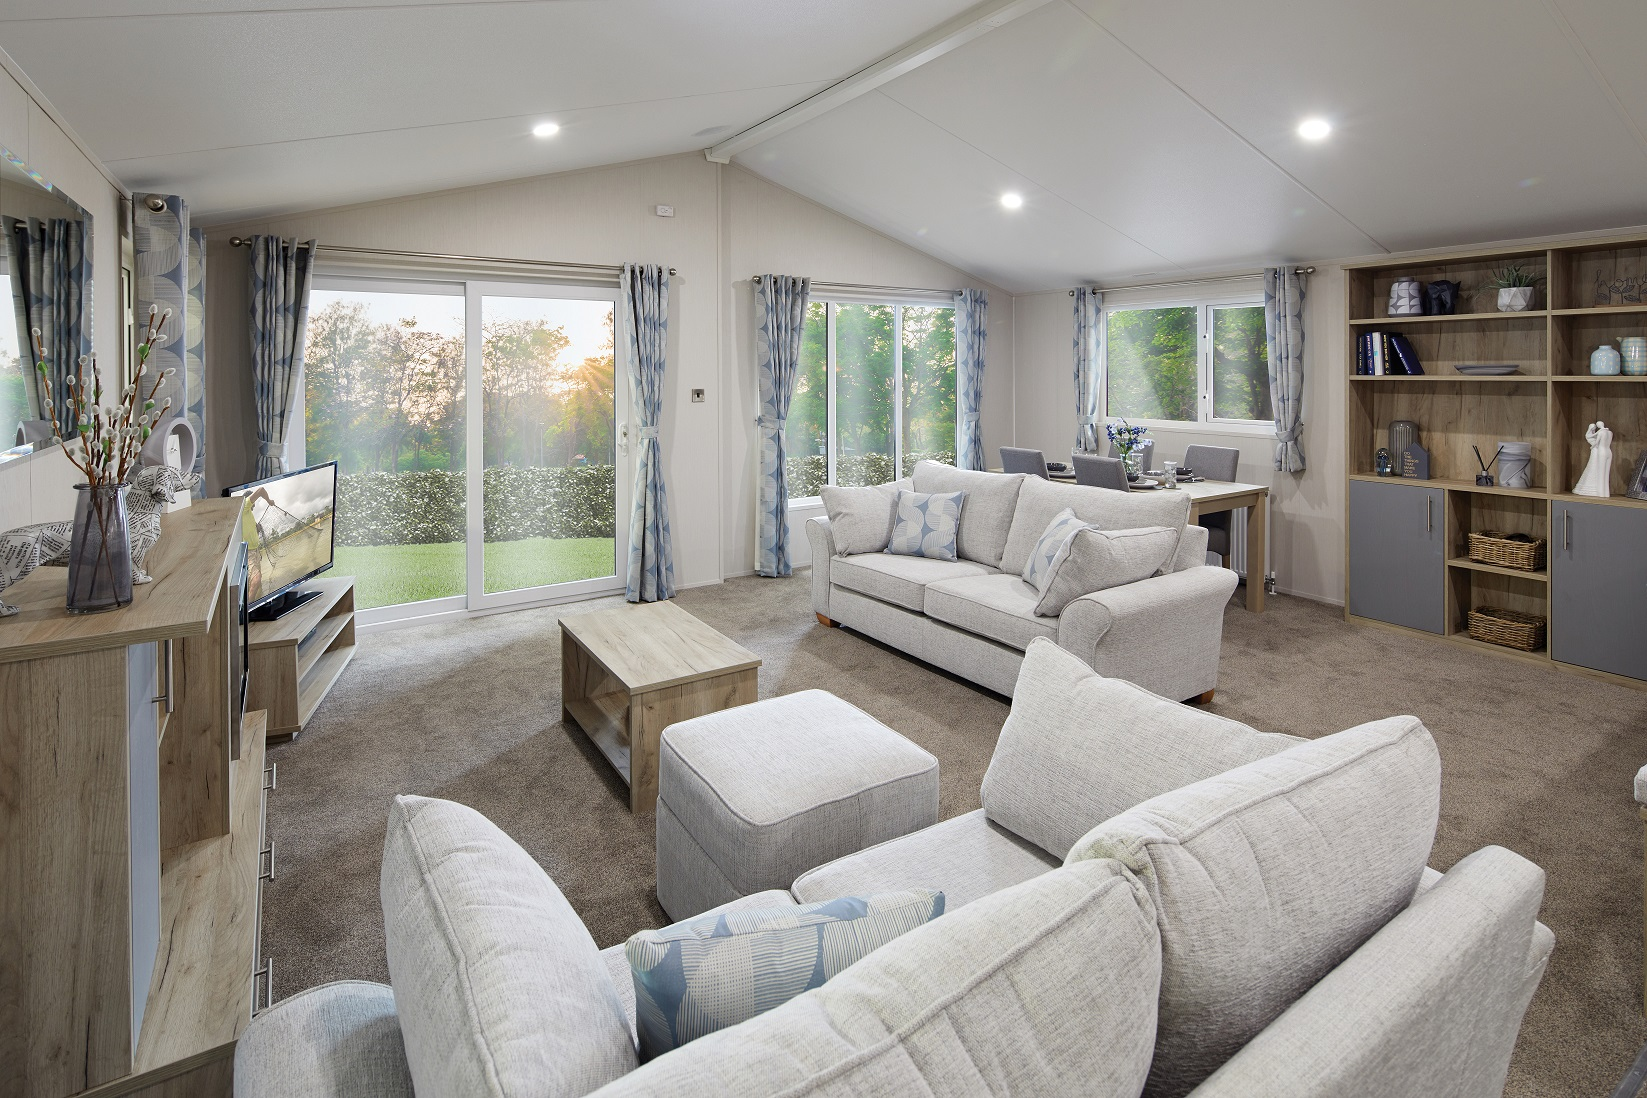 Willerby Clearwater: Static Caravans and Holiday Homes for Sale on Caravan Parks, Richmond, North Yorkshire Large Image 1